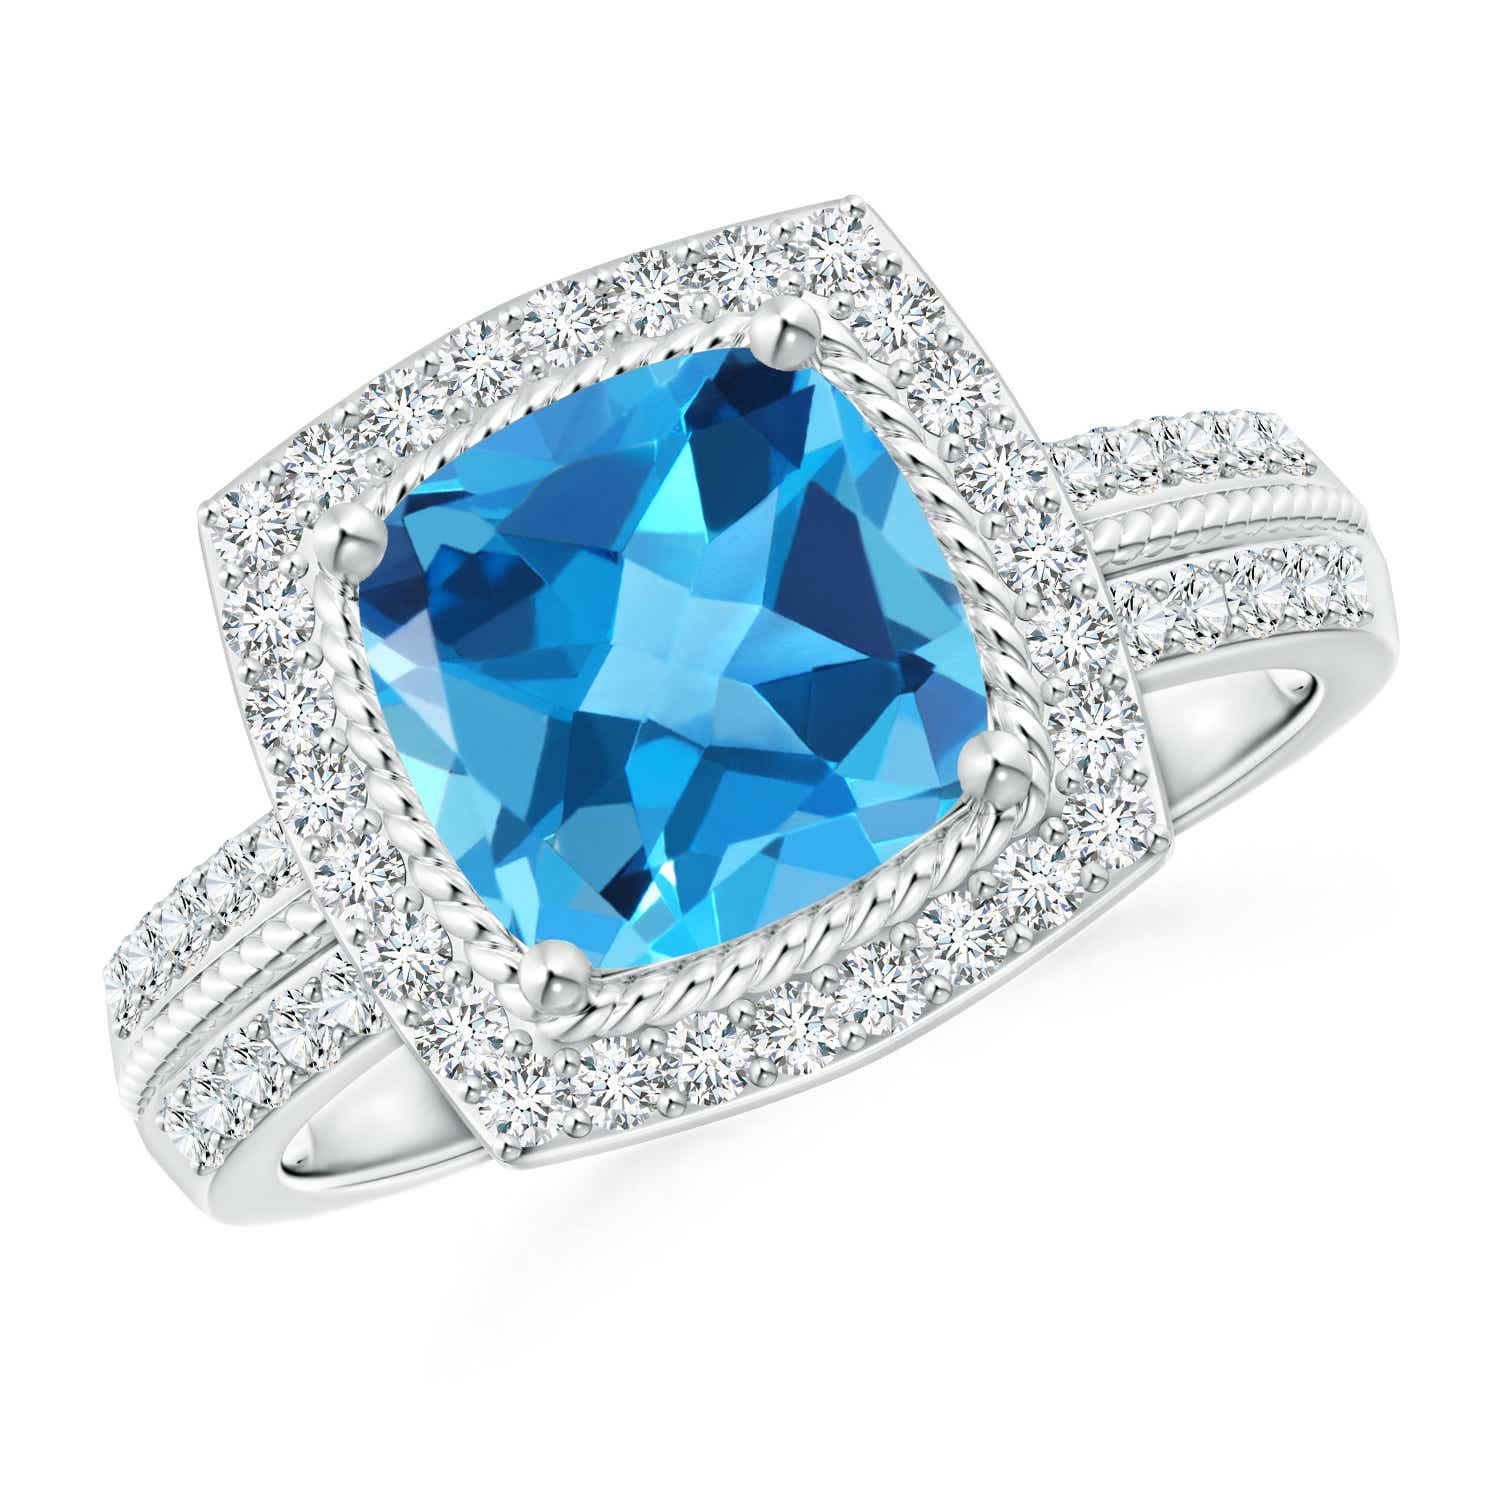 Angara Diamond Halo and Swiss Blue Topaz Engagement Ring in Rose Gold NPGP0K0mk